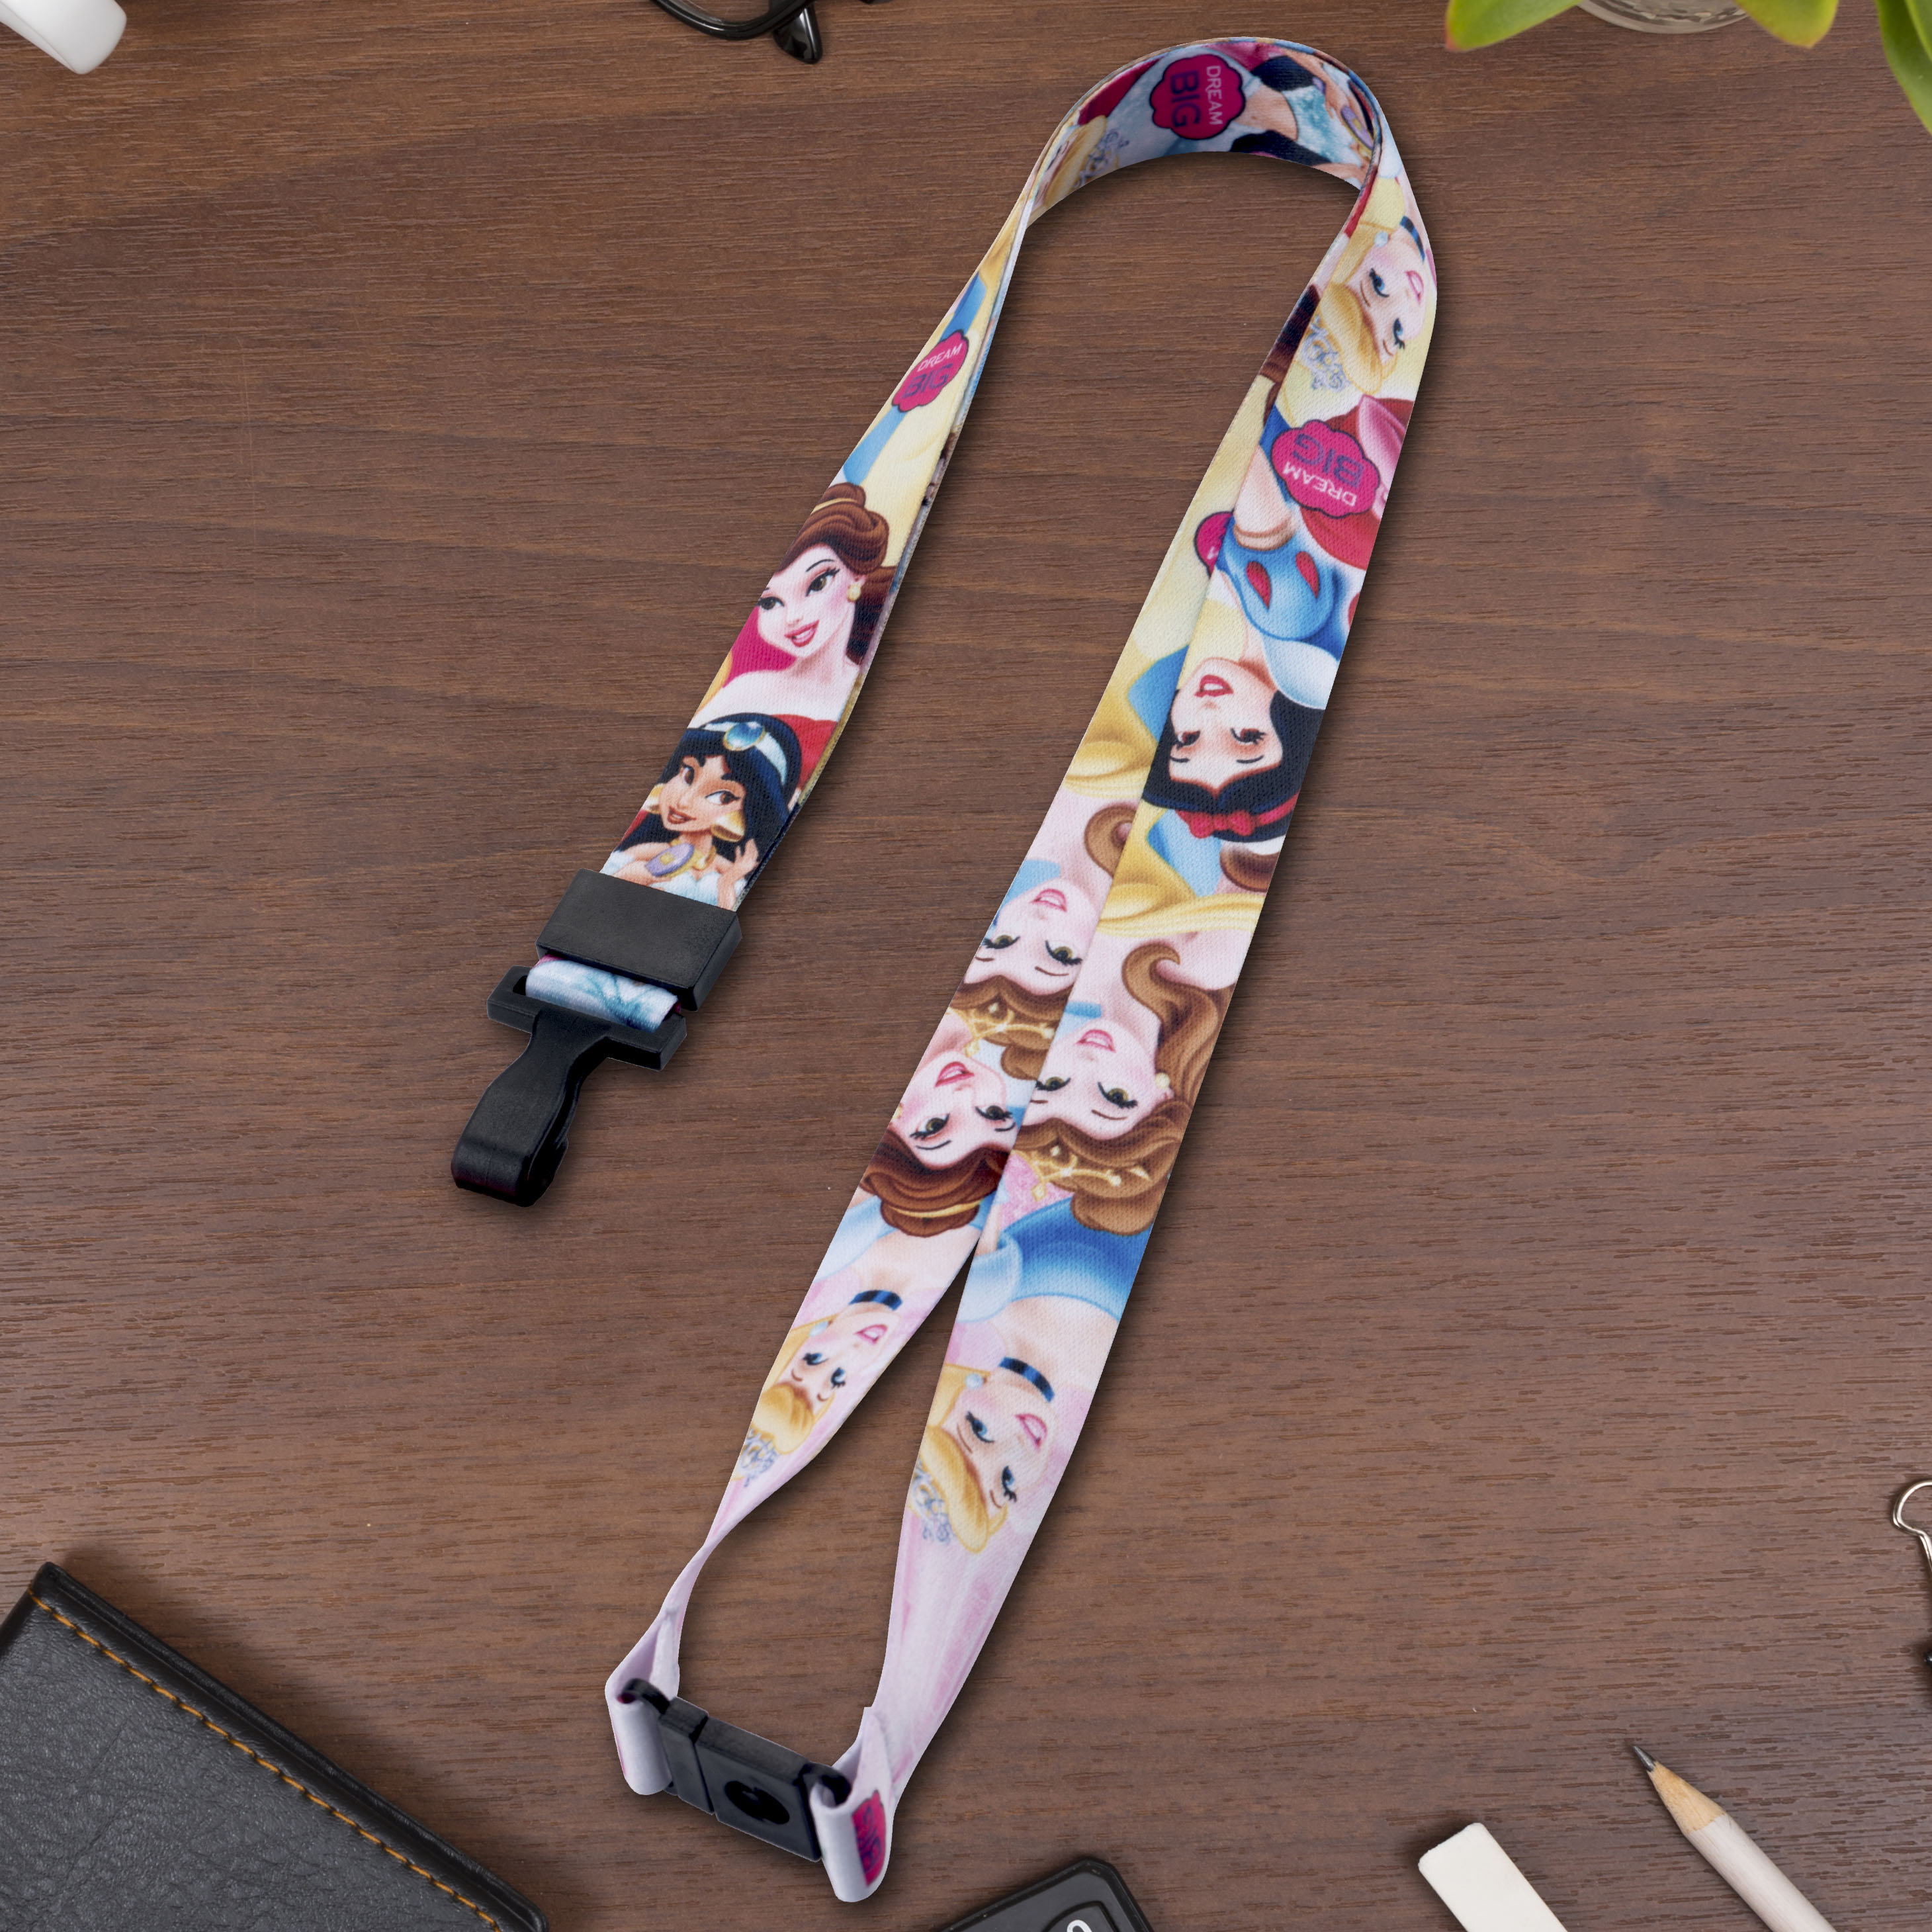 GREEN DETACHABLE NECK STRAP FOR CAMERA,MOBILE PHONE,ID HOLDERS NEW *V23**